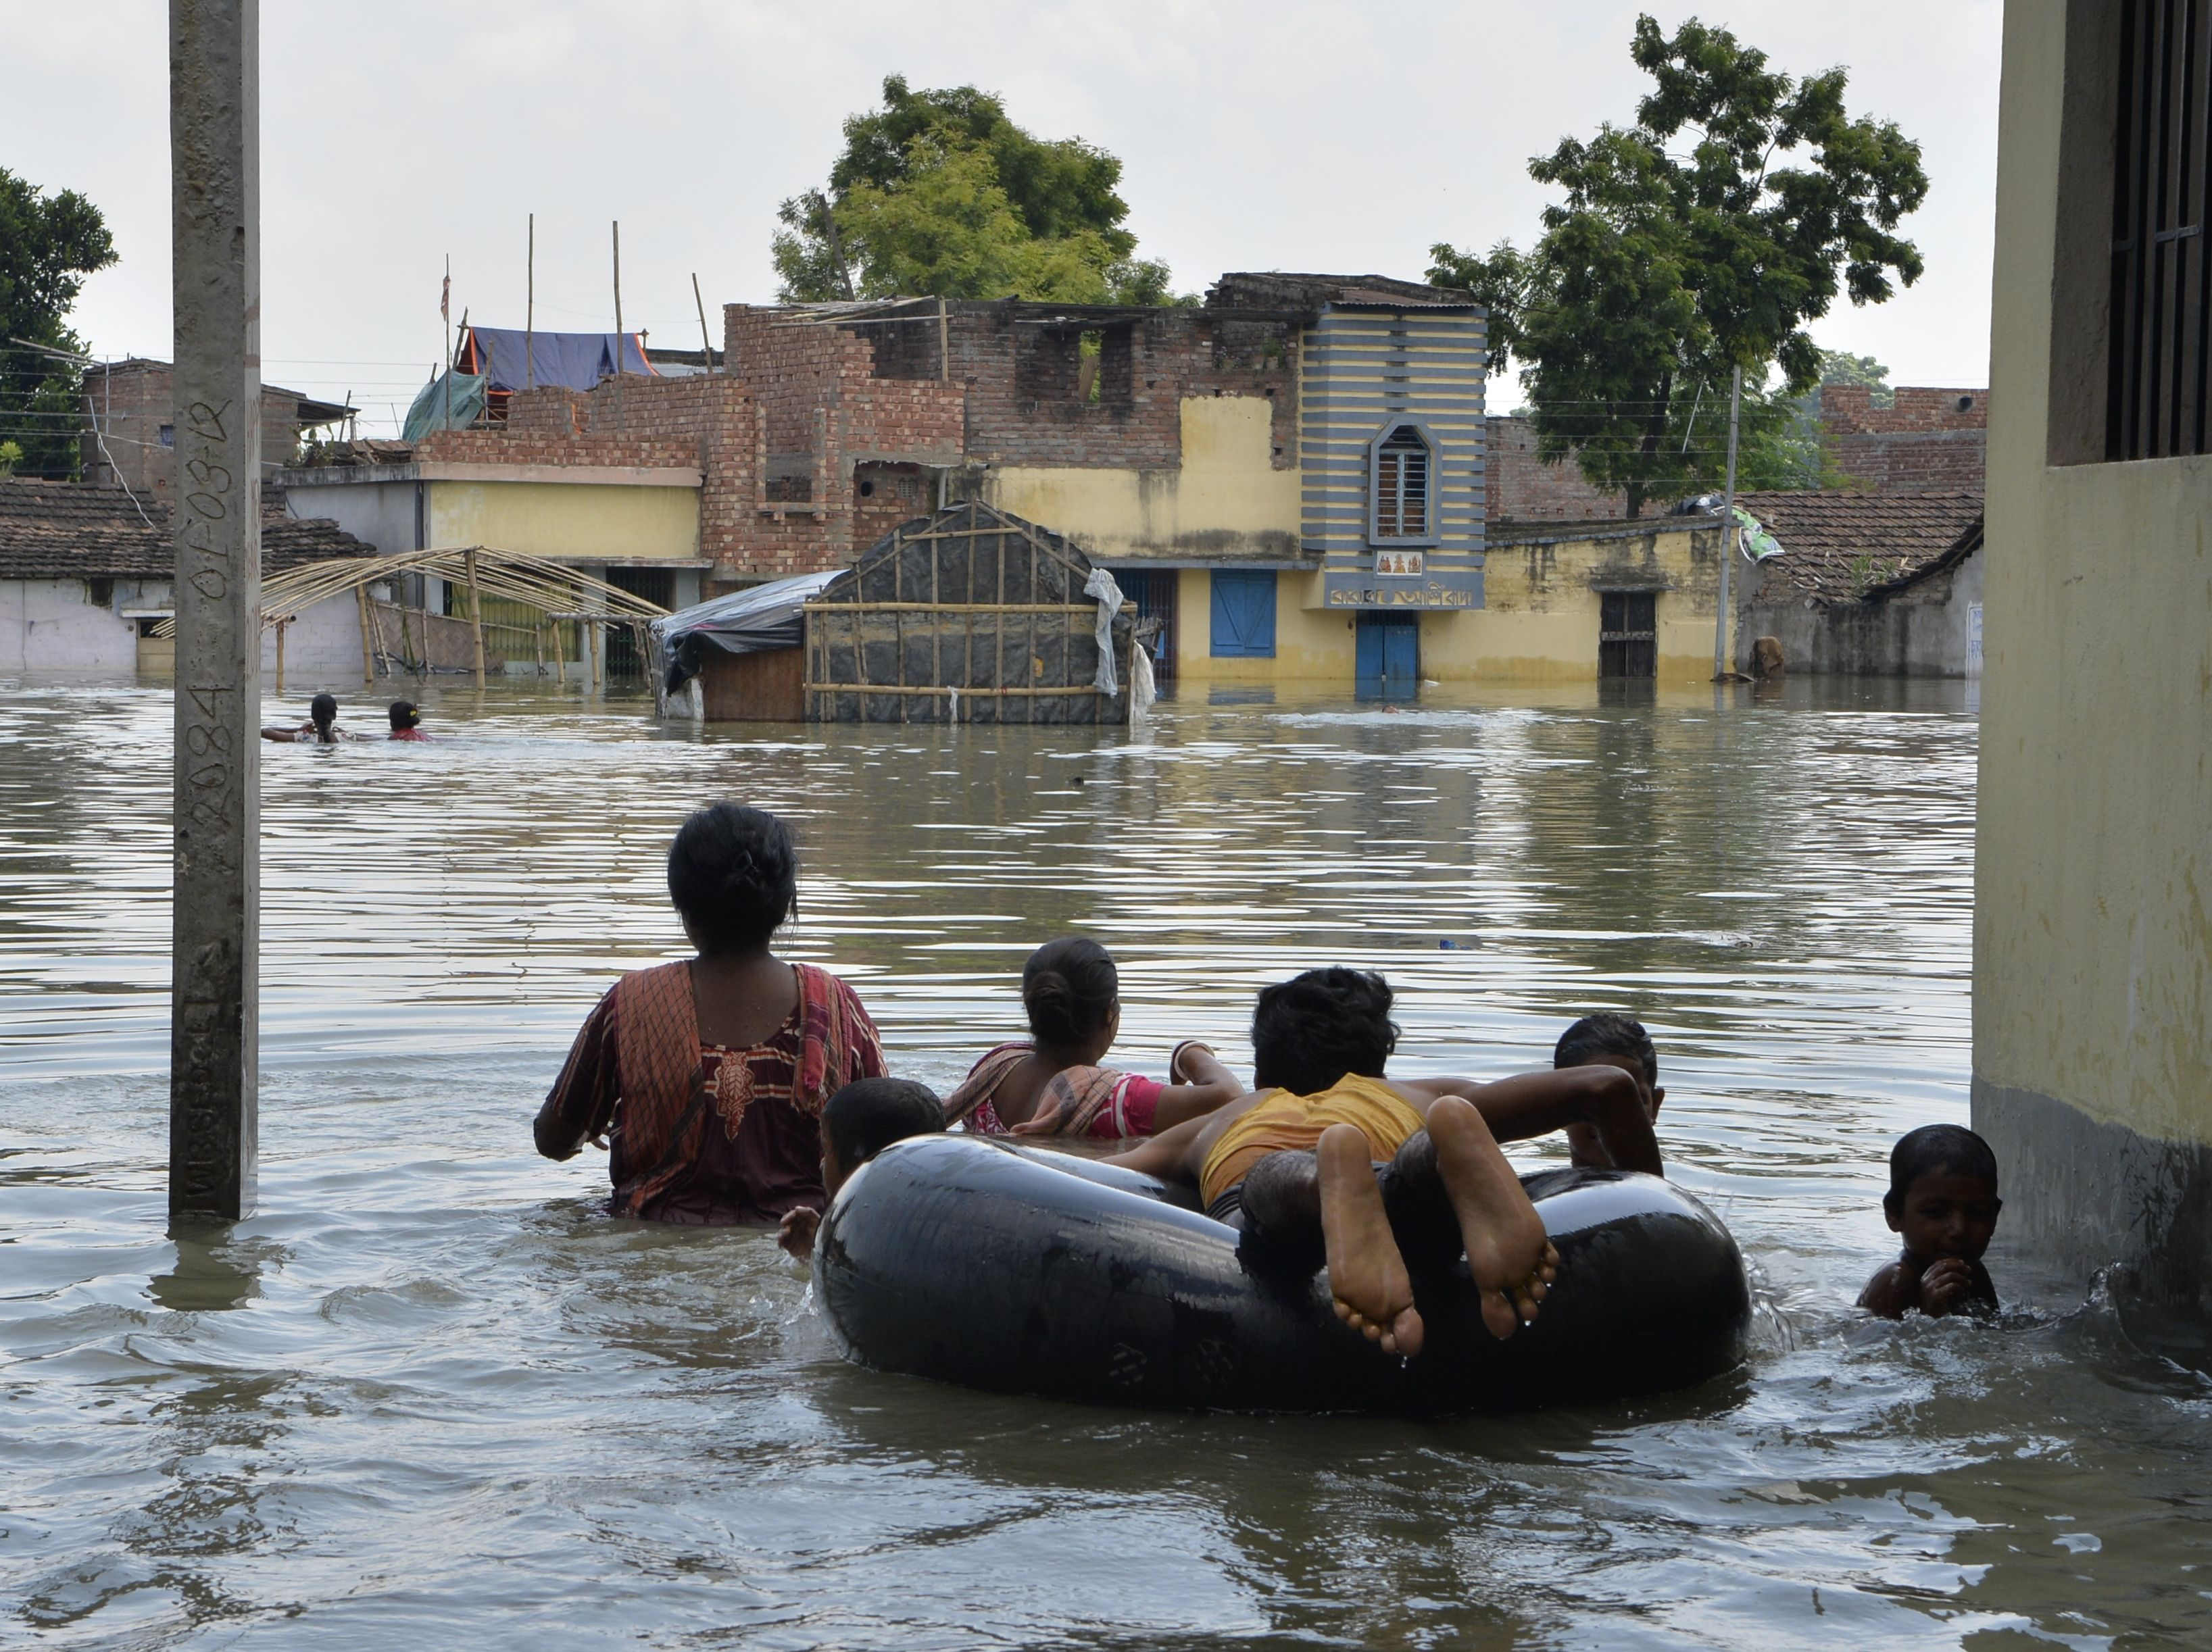 Indian residents wade through flood waters in the Indian state of West Bengal on Aug. 24, 2017.